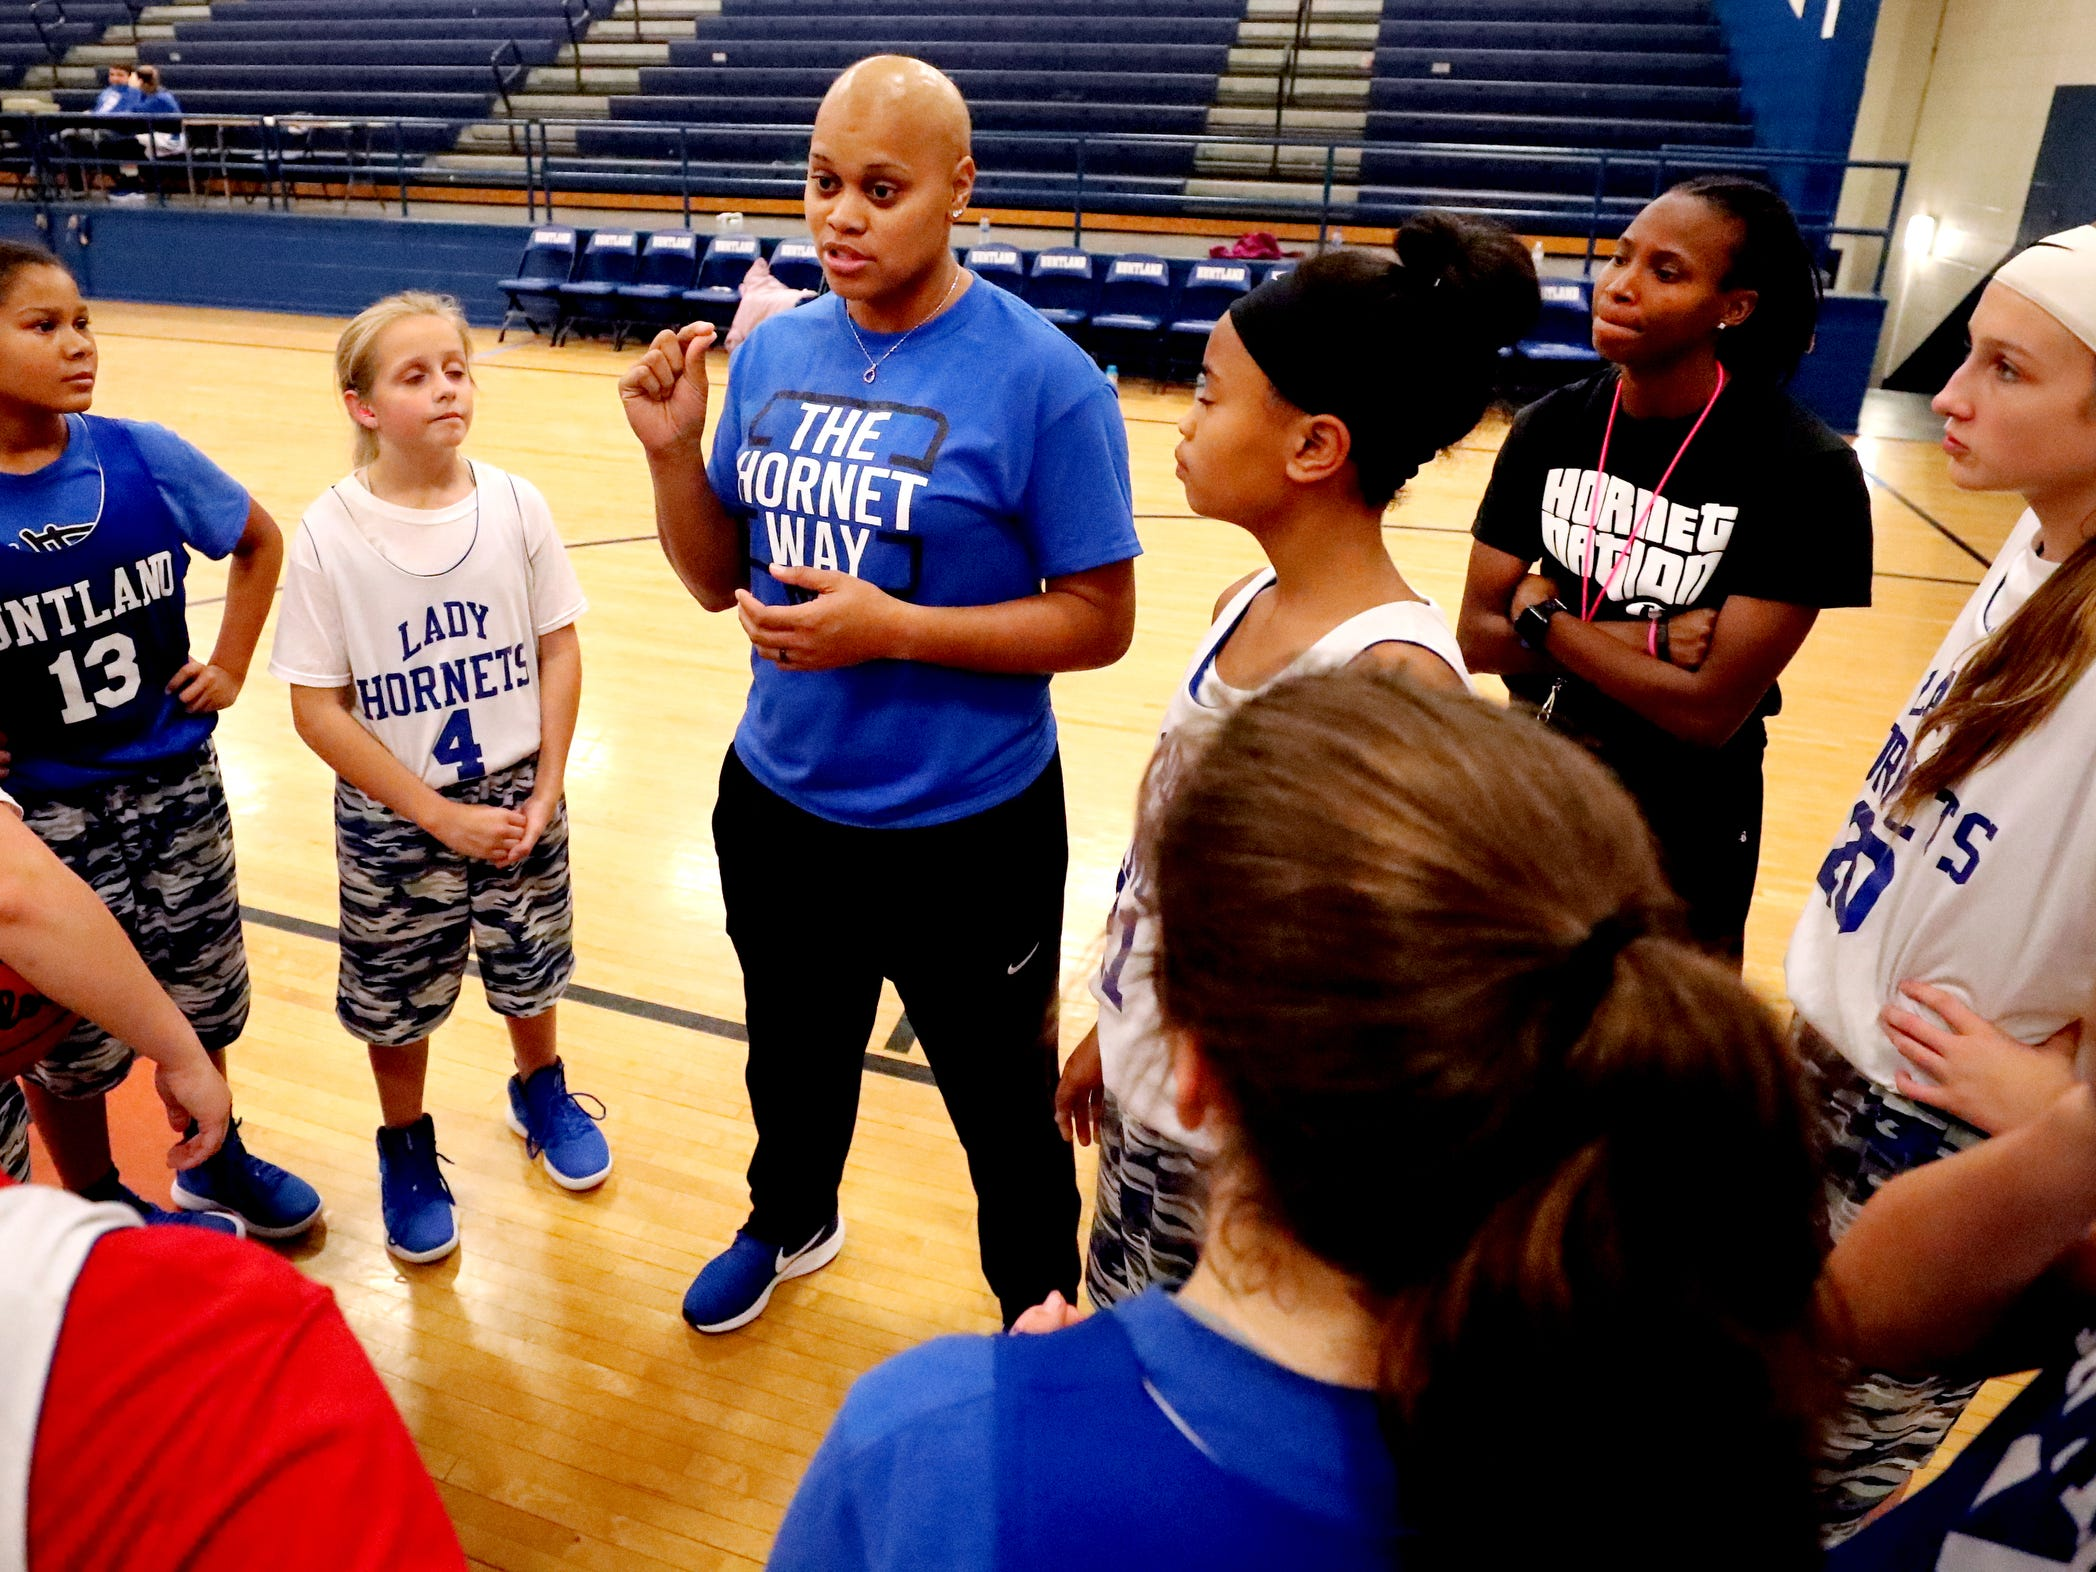 Huntland middle school girls basketball coach Tia Stovall talks with her team during a huddle near the end of practice on Tuesday, Nov. 13, 2018.